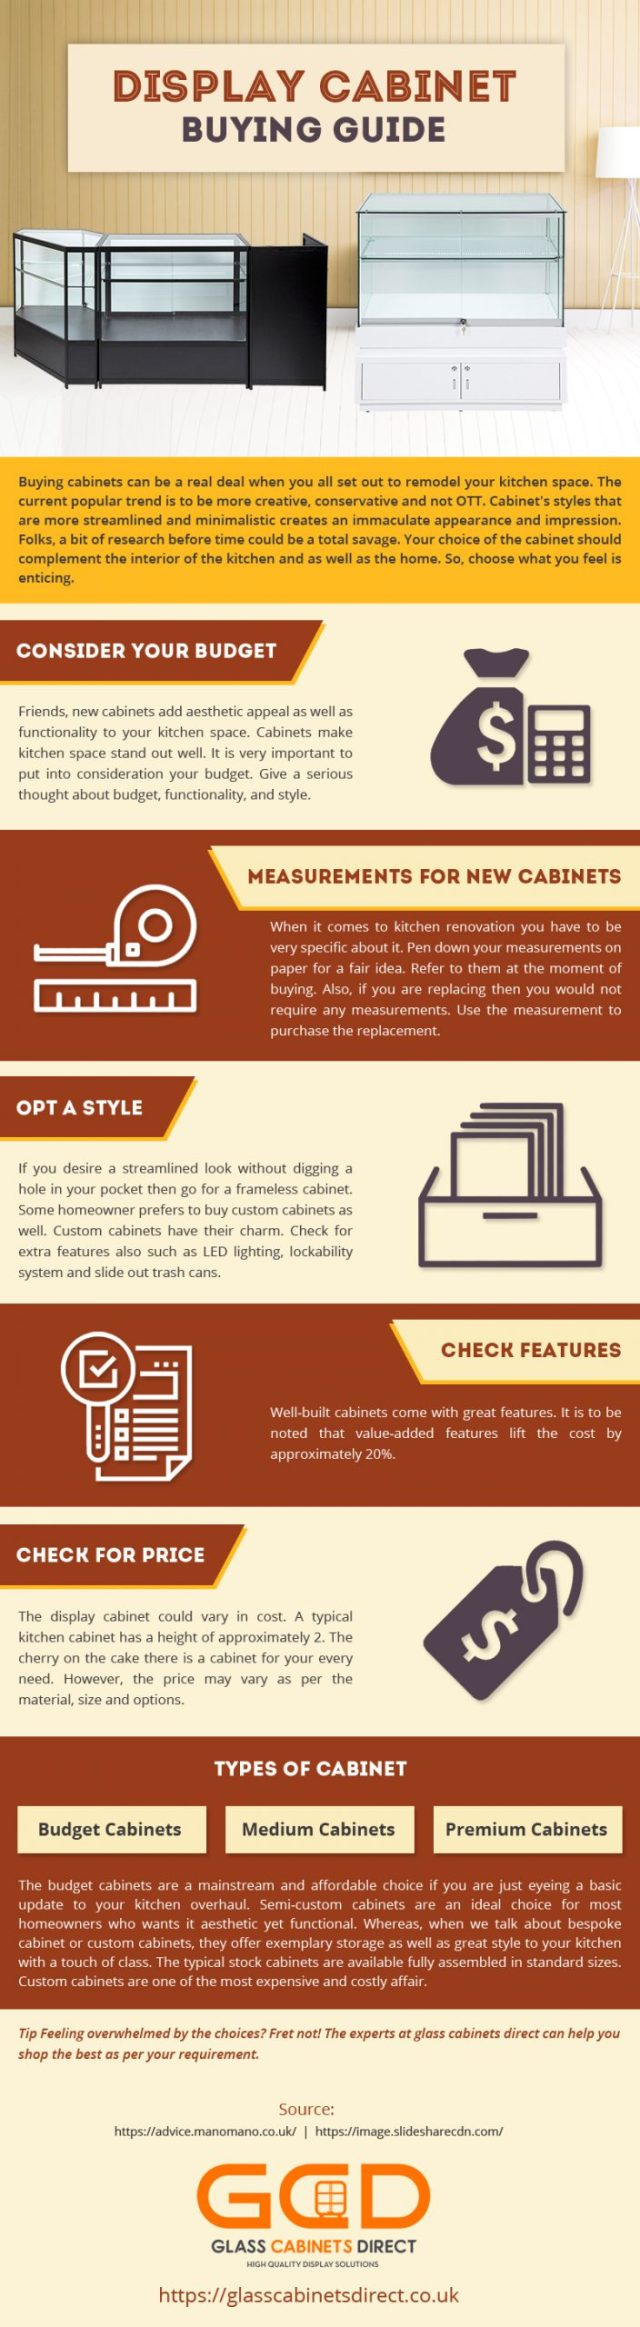 buying-guide-for-display-cabinet